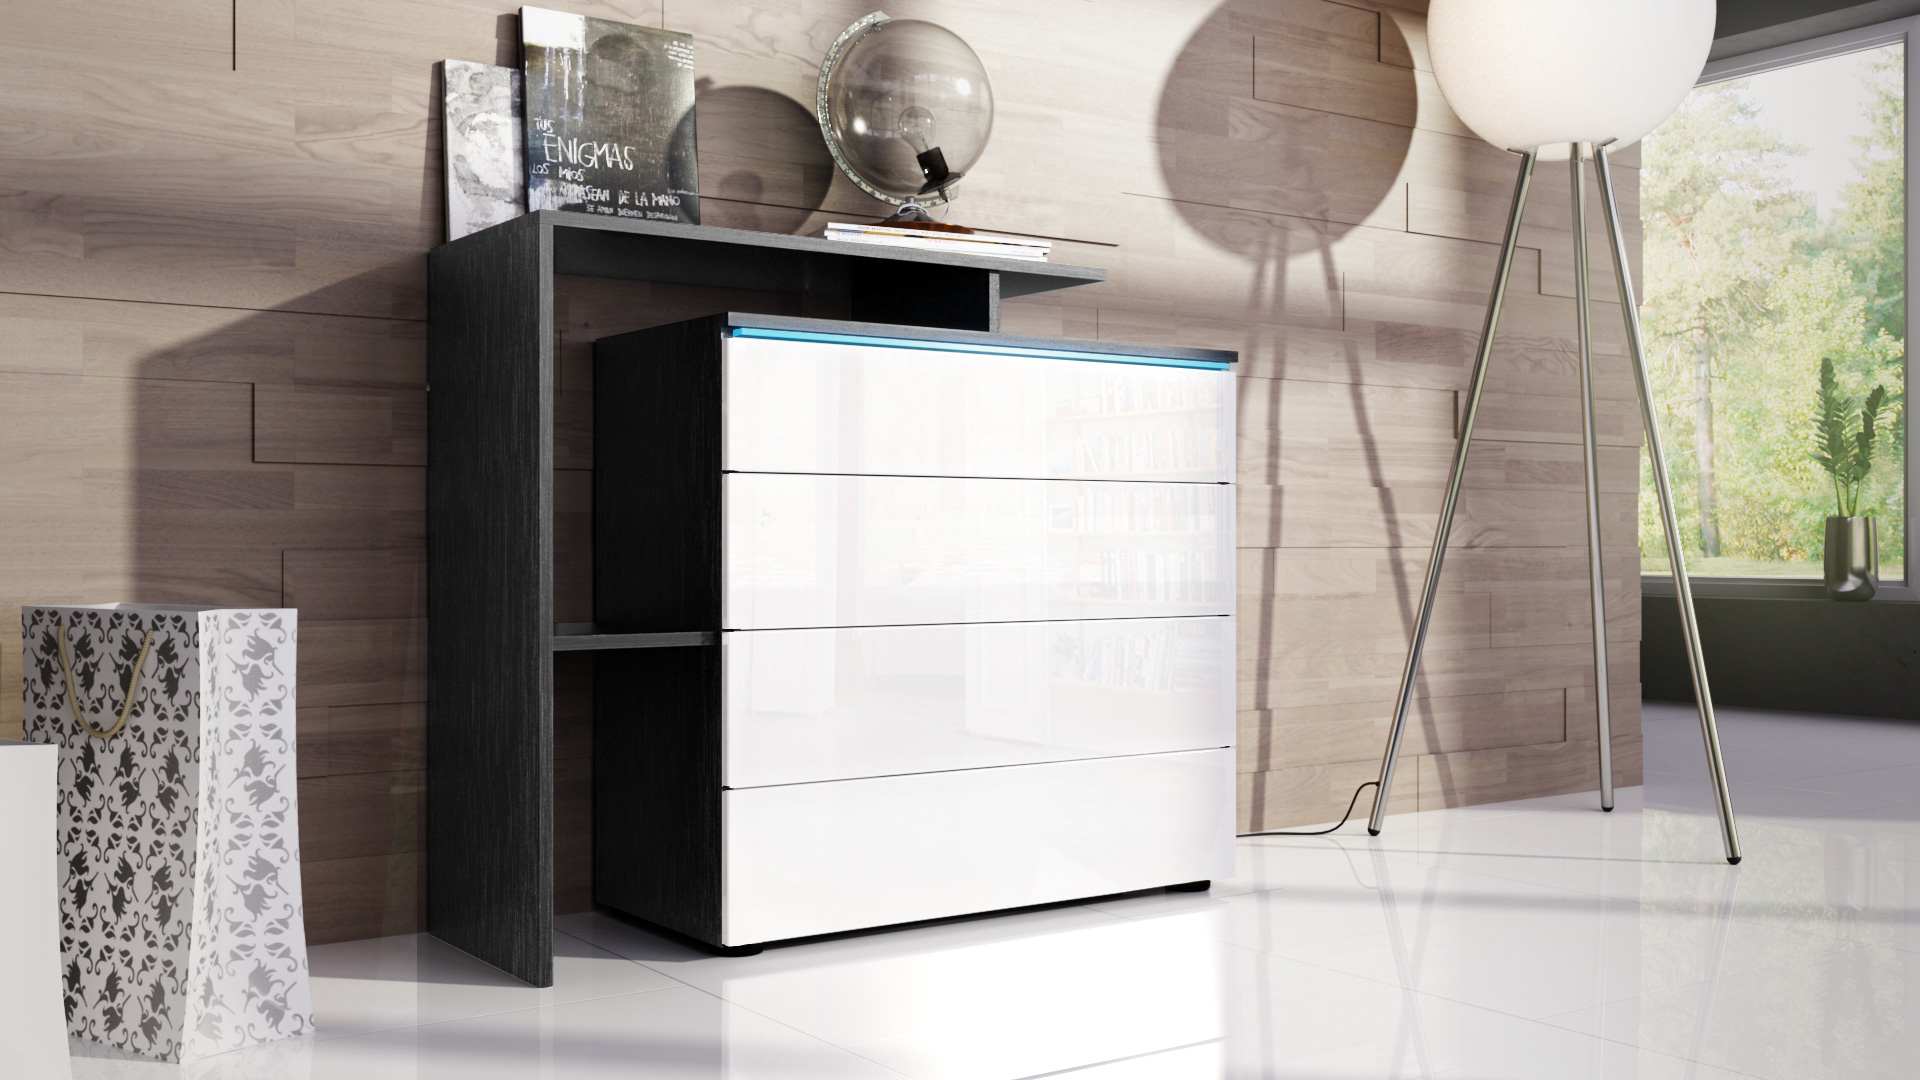 kommode schrank anrichte sideboard lissabon v2 in schwarz hochglanz naturt ne ebay. Black Bedroom Furniture Sets. Home Design Ideas